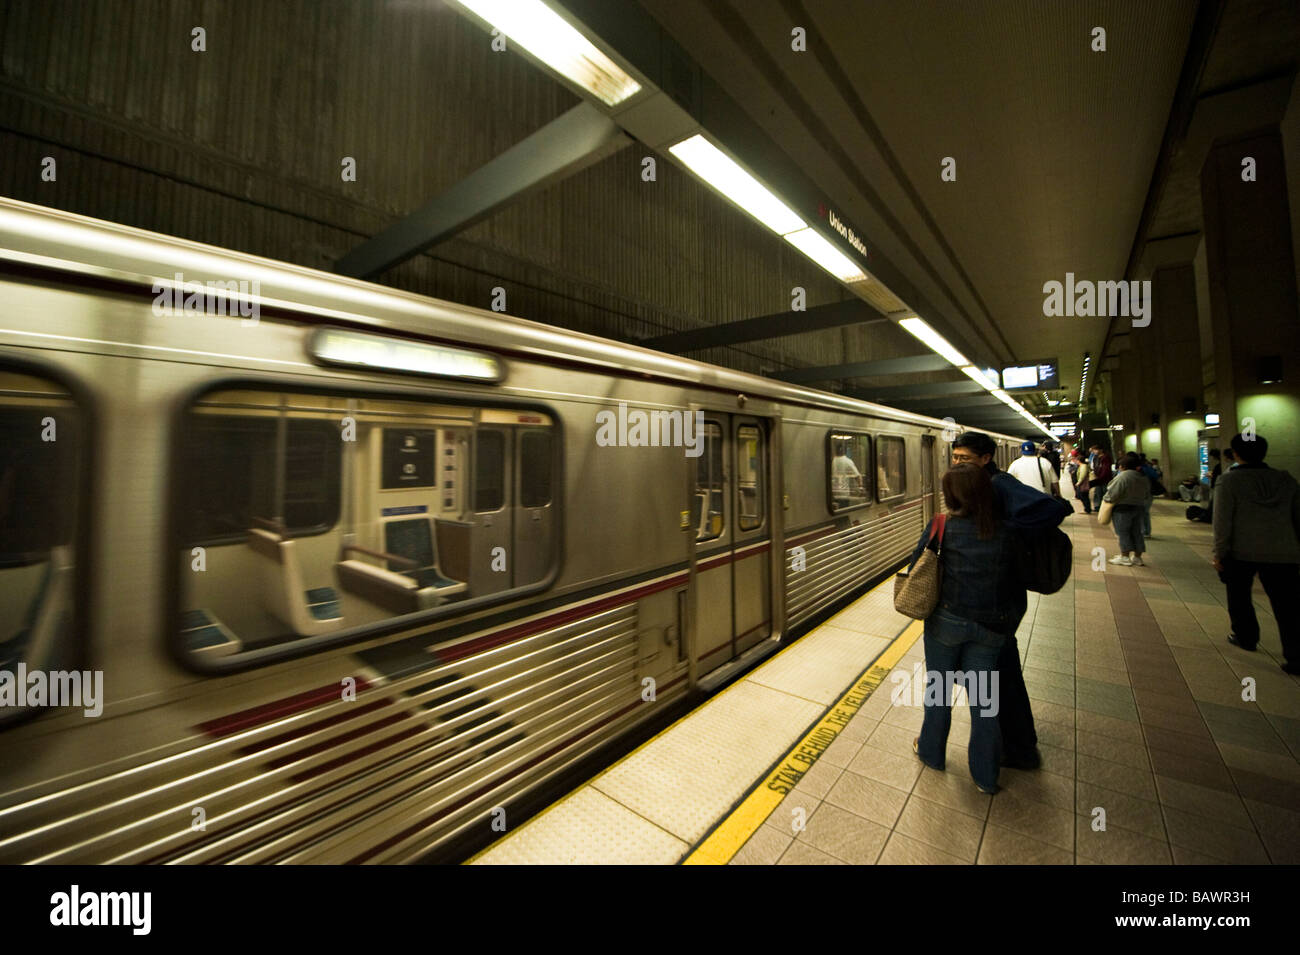 Subway in Los Angeles California Stock Photo, Royalty Free Image ...